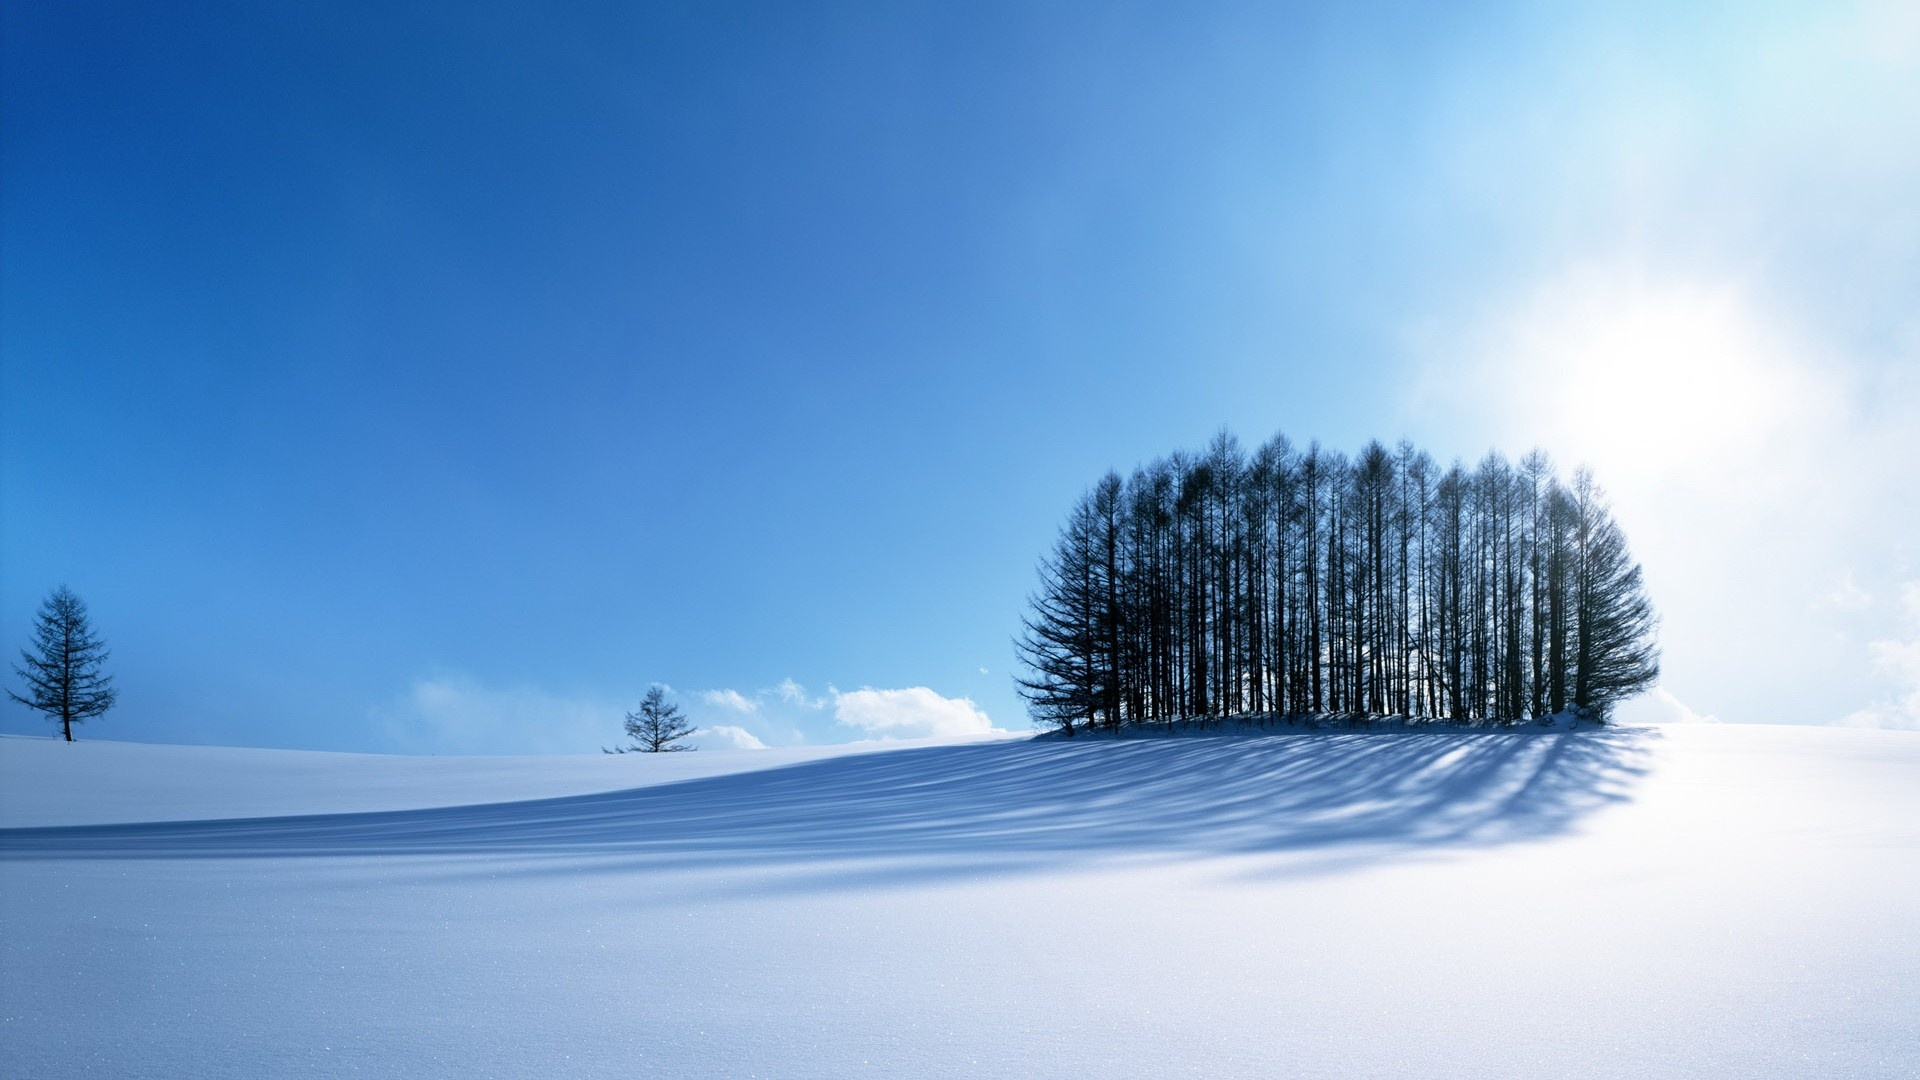 Cold Wallpapers